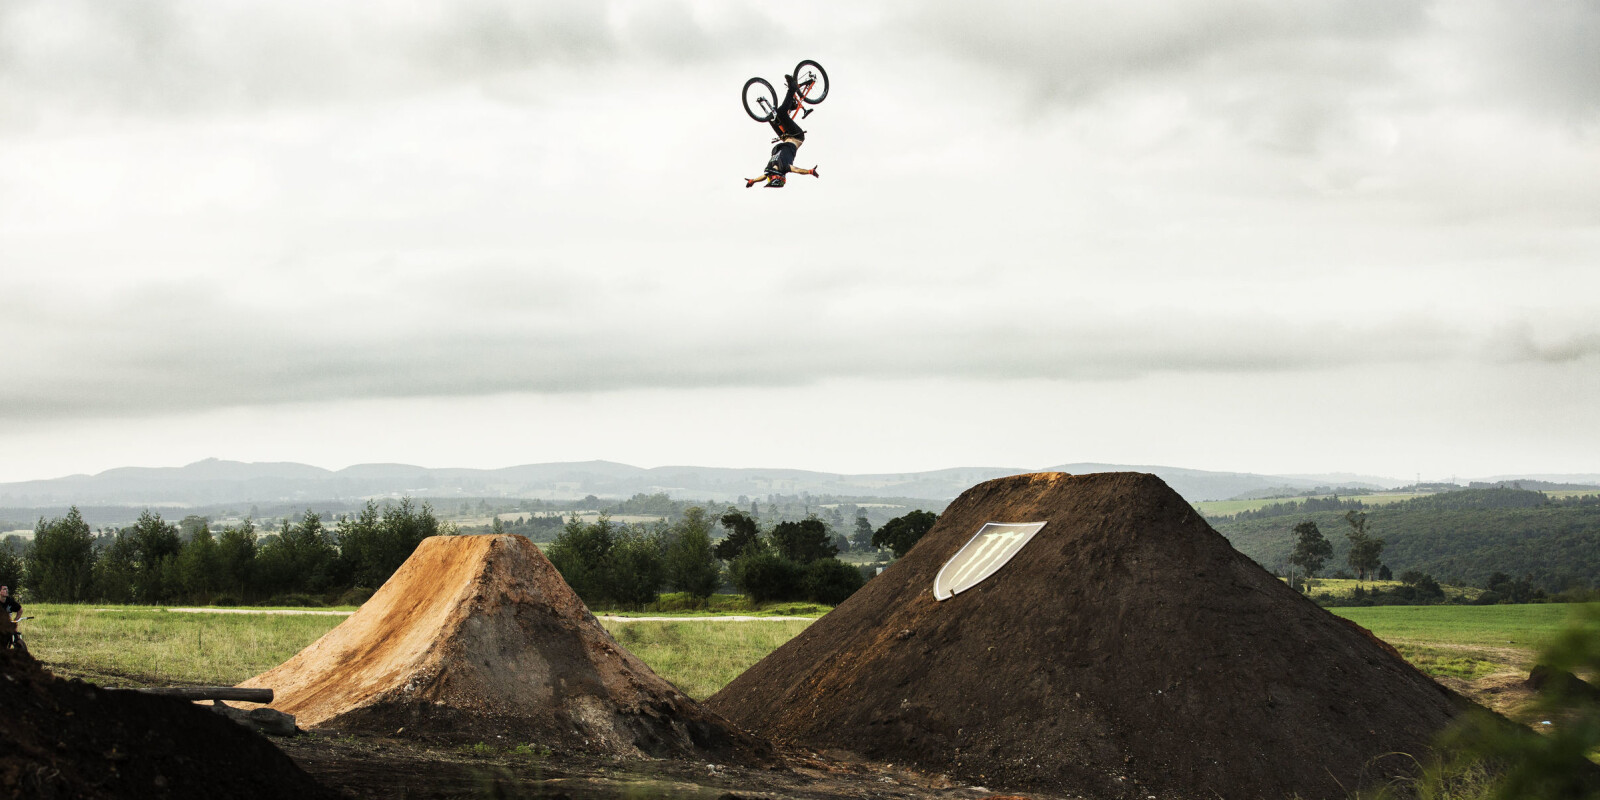 Sam Reynolds, Backflip no hander - Pure Darkness 3